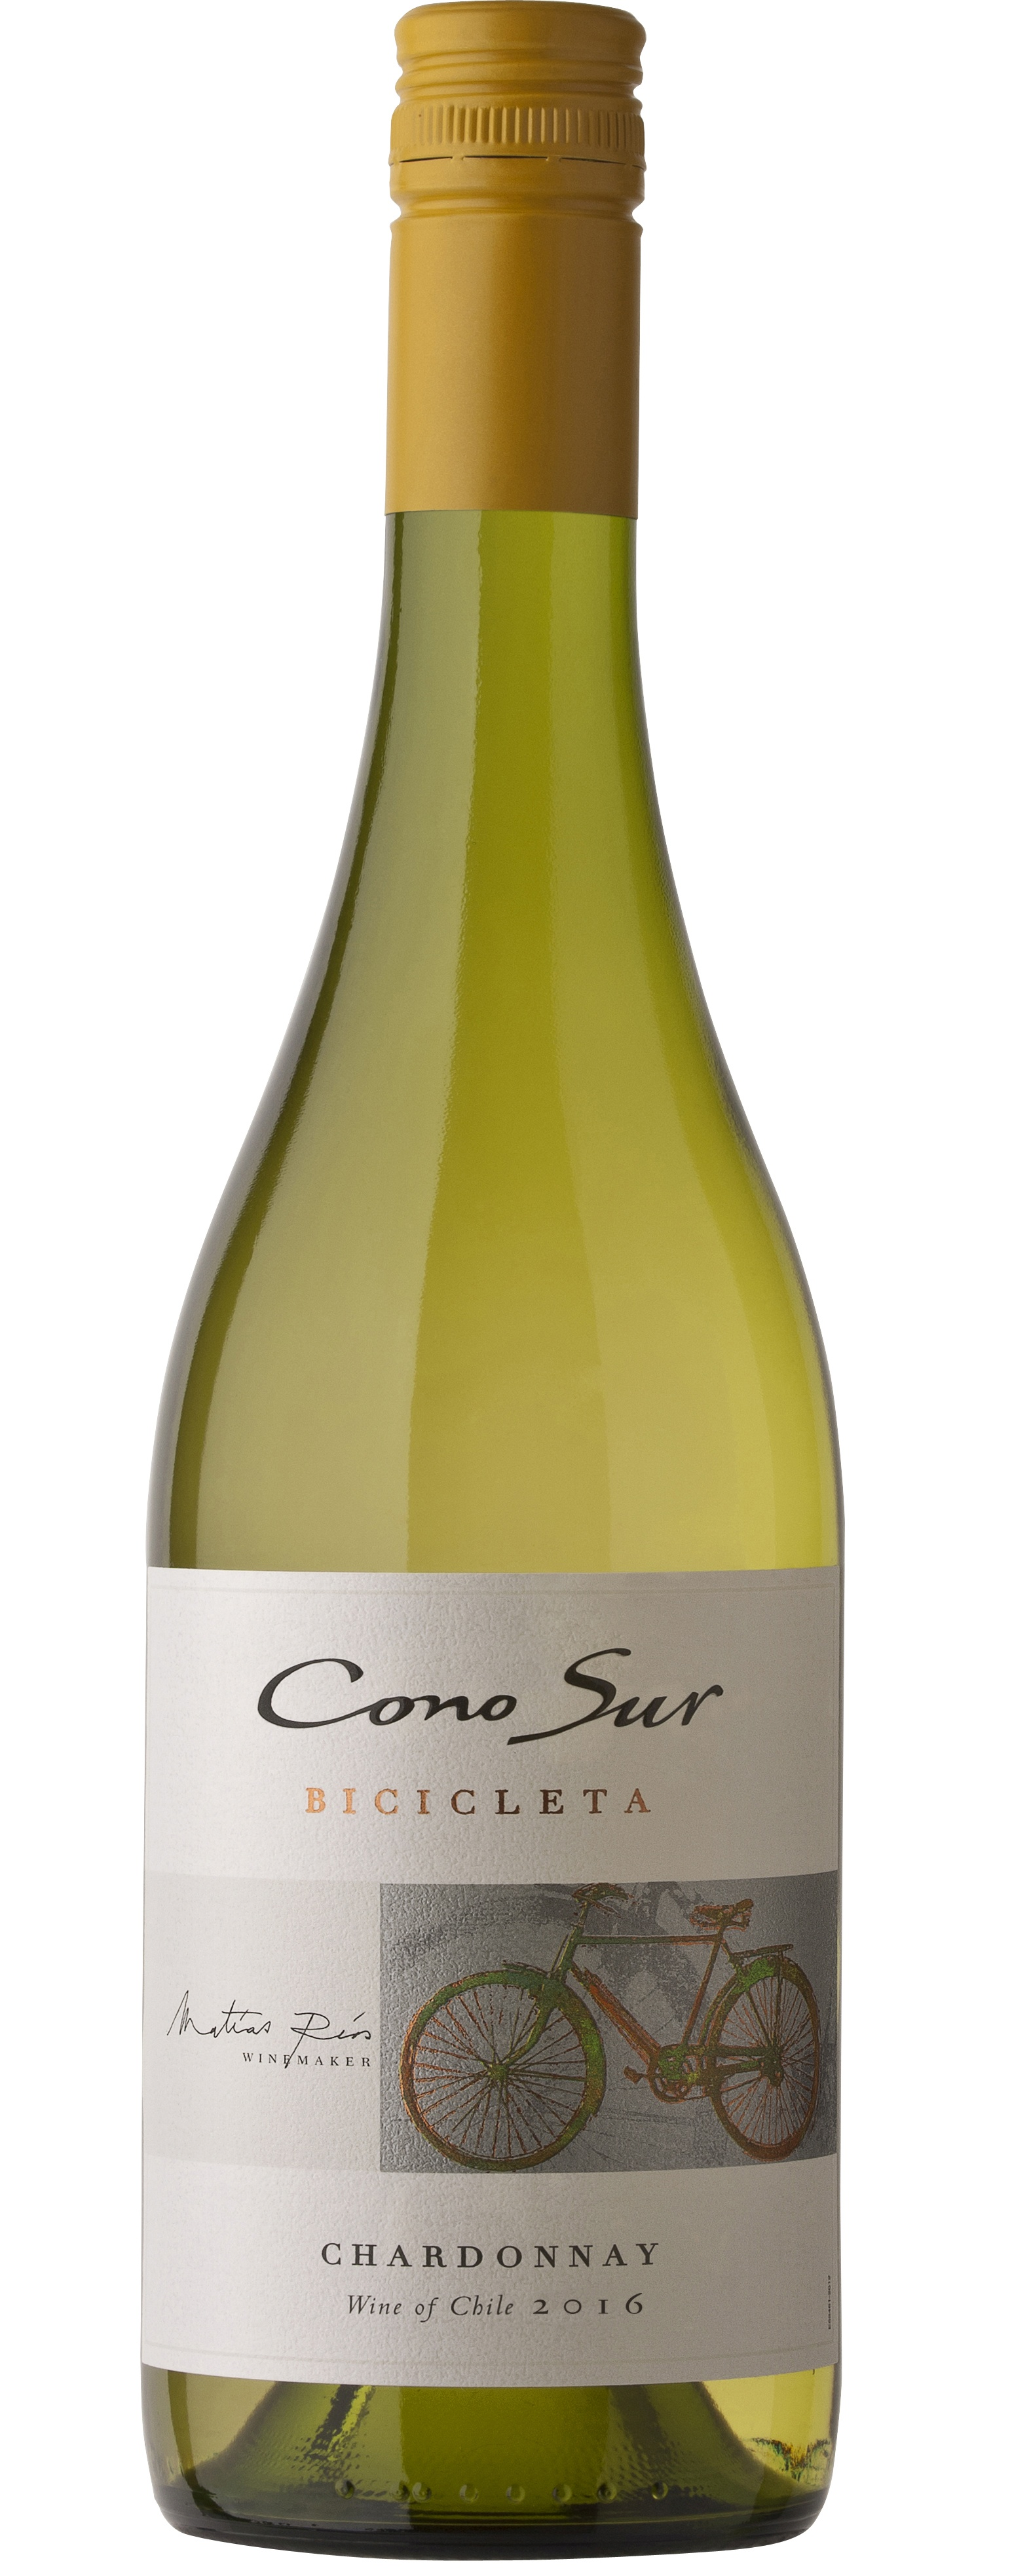 Cono Sur, Bicicleta, Chardonnay, Central Valley, DO, trocken, weiß